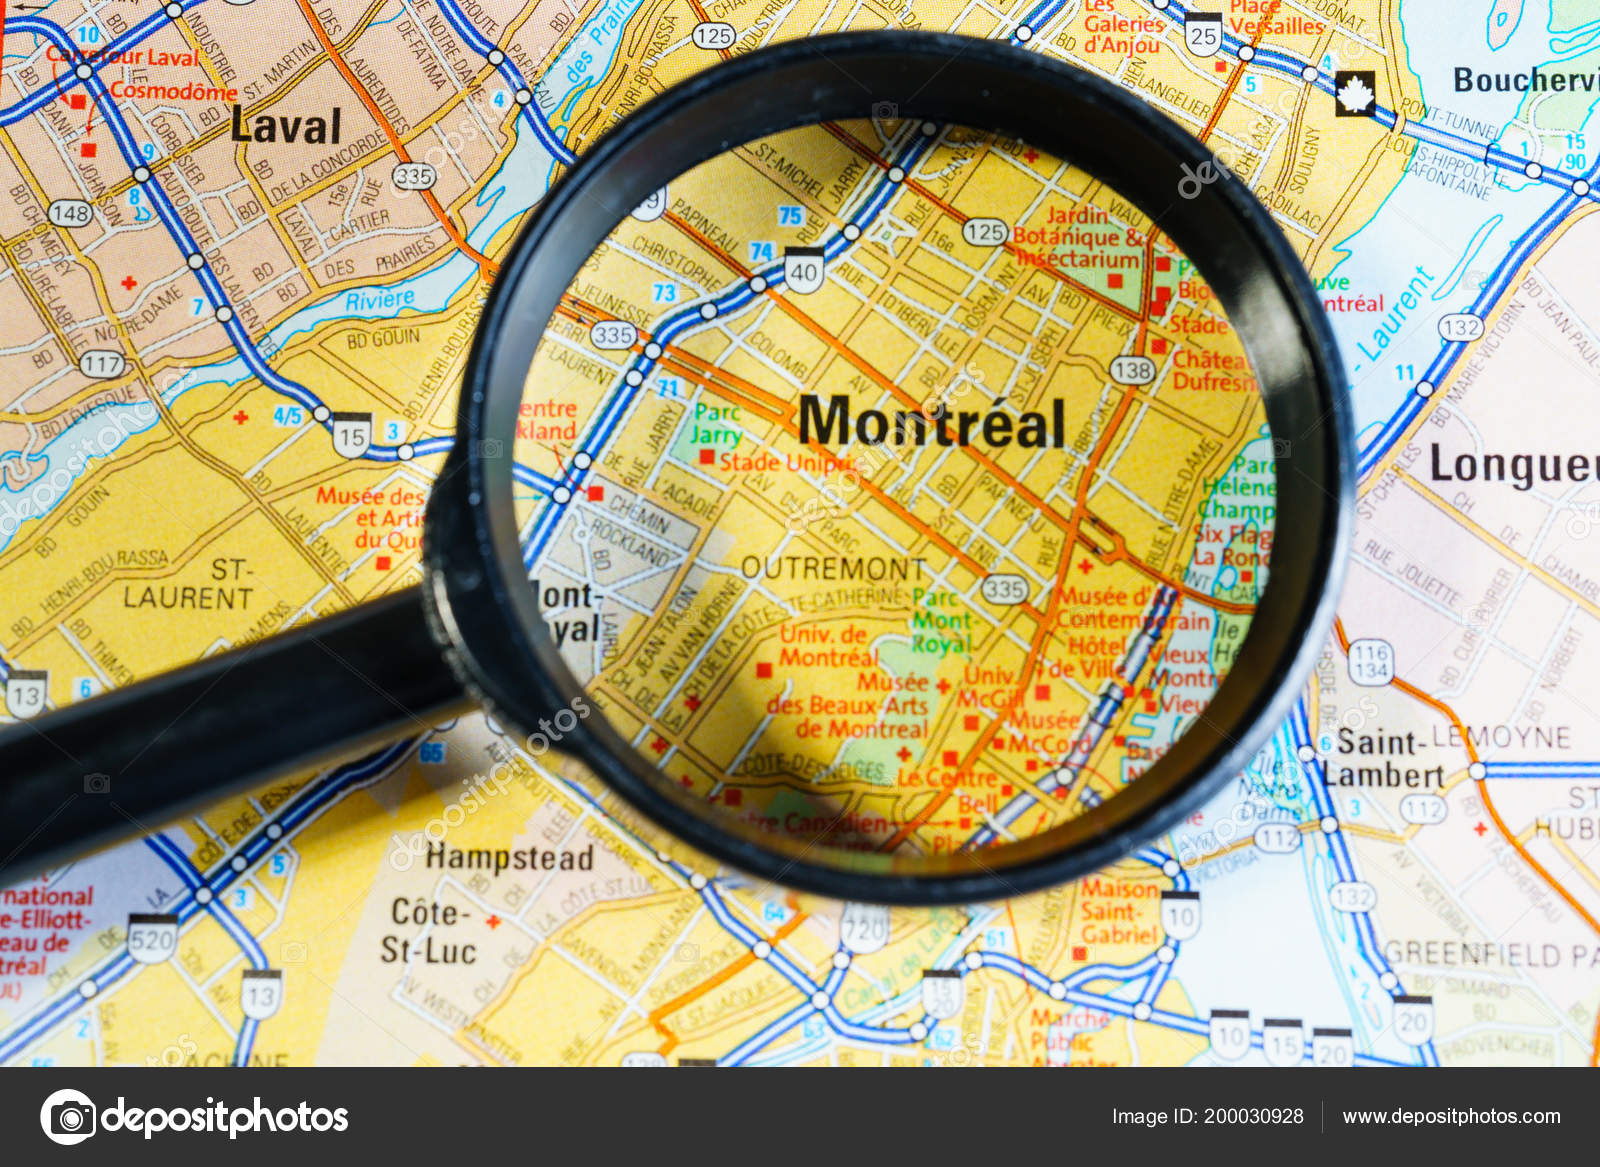 Canada Map Montreal.Montreal Canada Map Stock Photo C Aallm 200030928